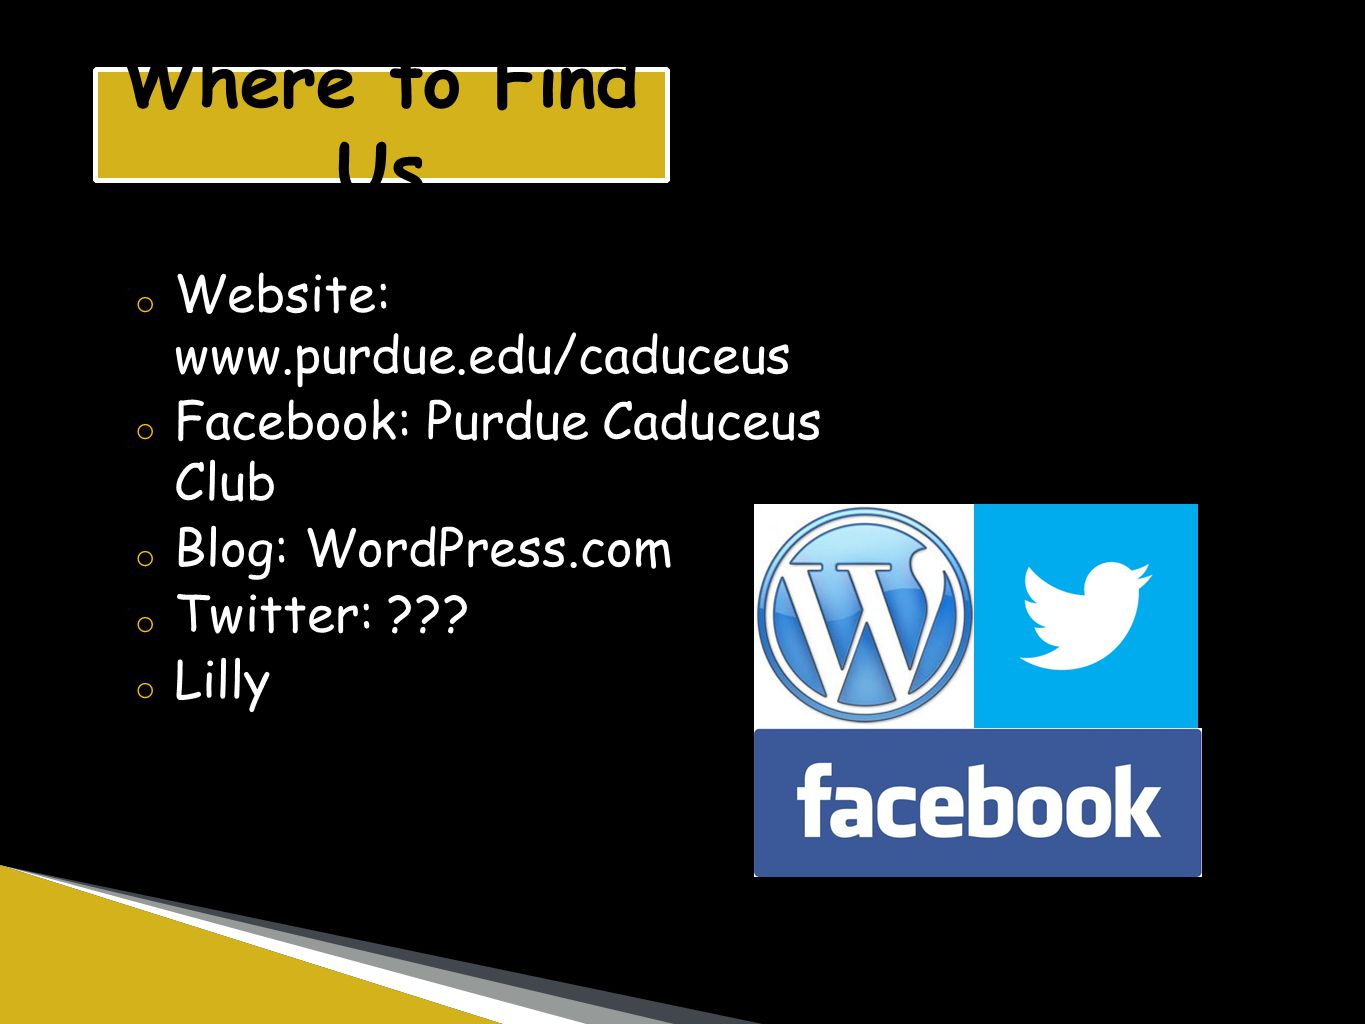 Where to Find Us o Website: www.purdue.edu/caduceus o Facebook: Purdue Caduceus Club o Blog: WordPress.com o Twitter: .